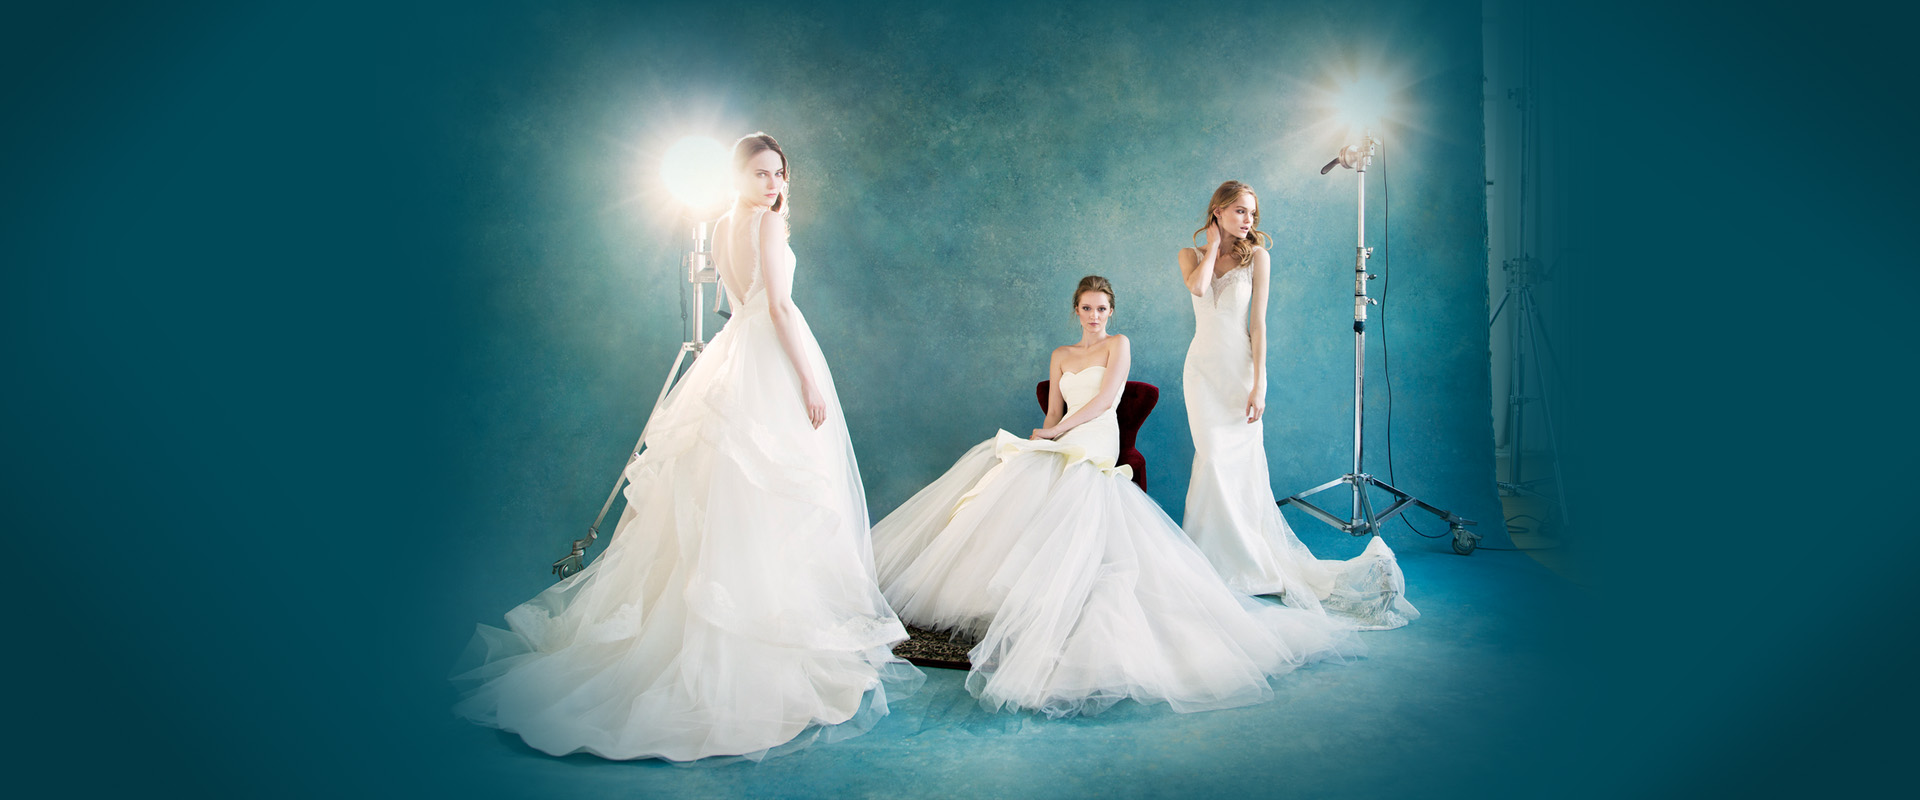 WEDDING DRESS FACTORY IN CHINA;BRIDAL GOWN FACTORY IN CHINA